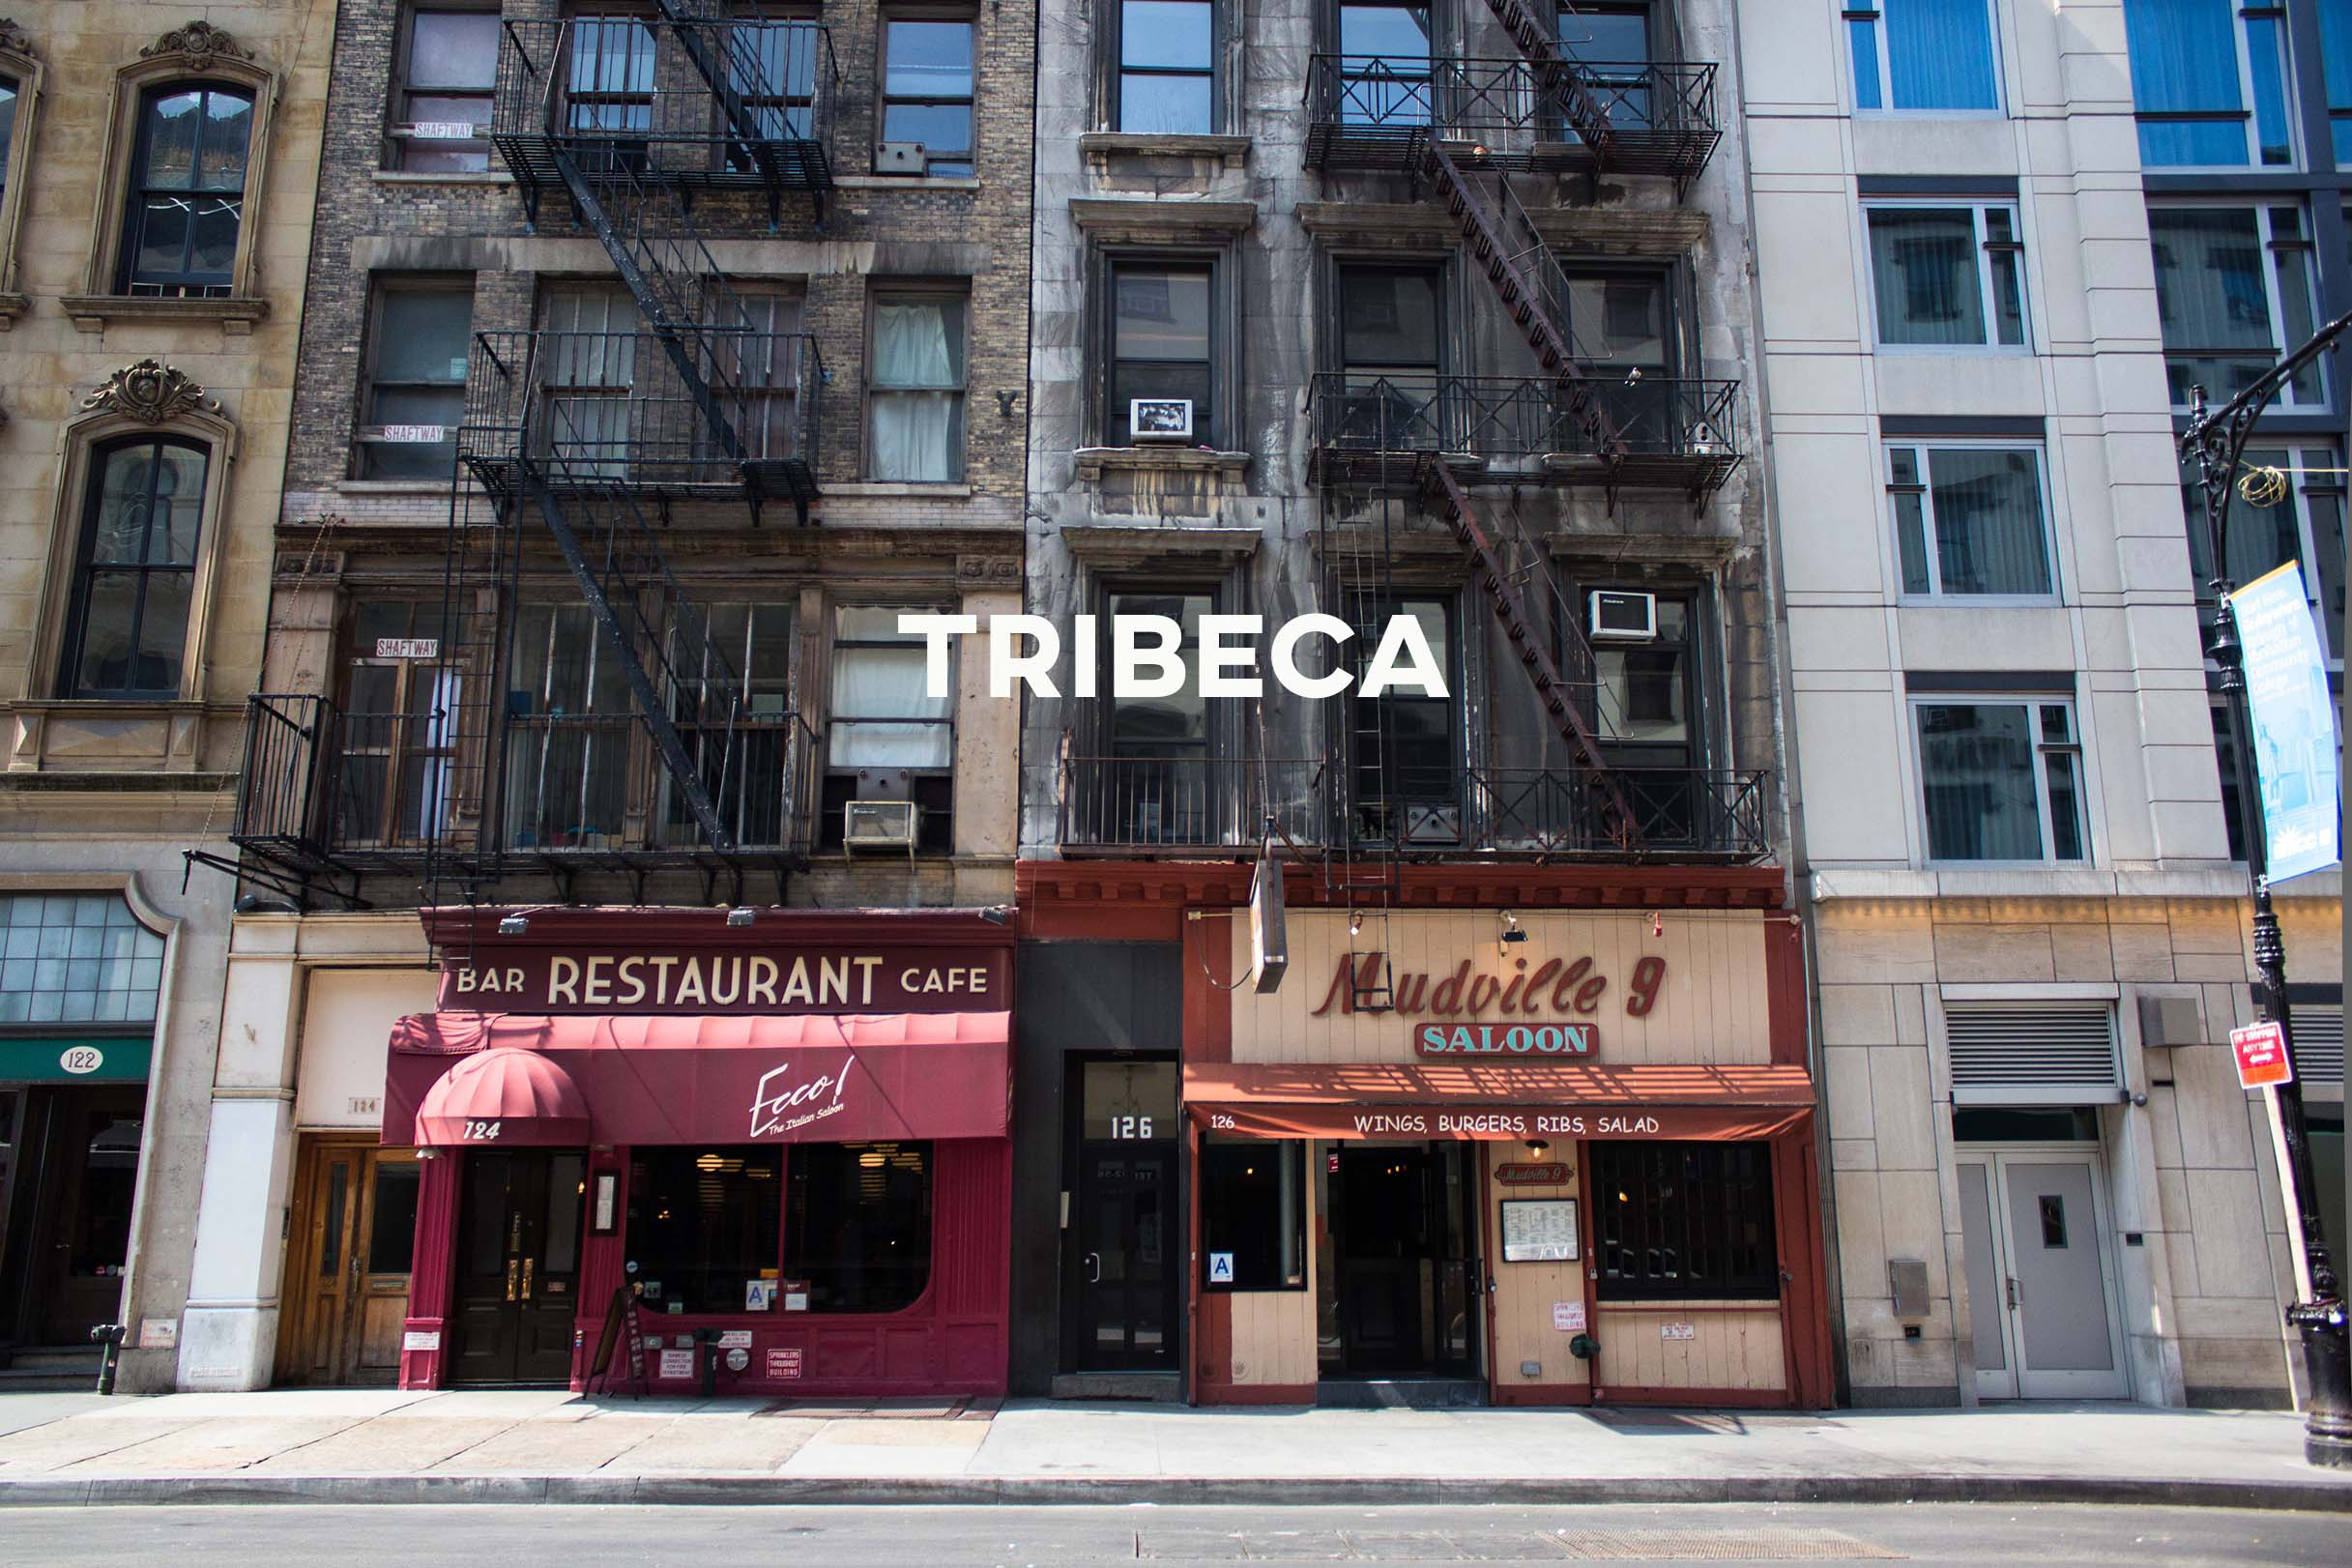 Tribeca - Films, family, and comfort, make this ecclectic neighborhood great for all